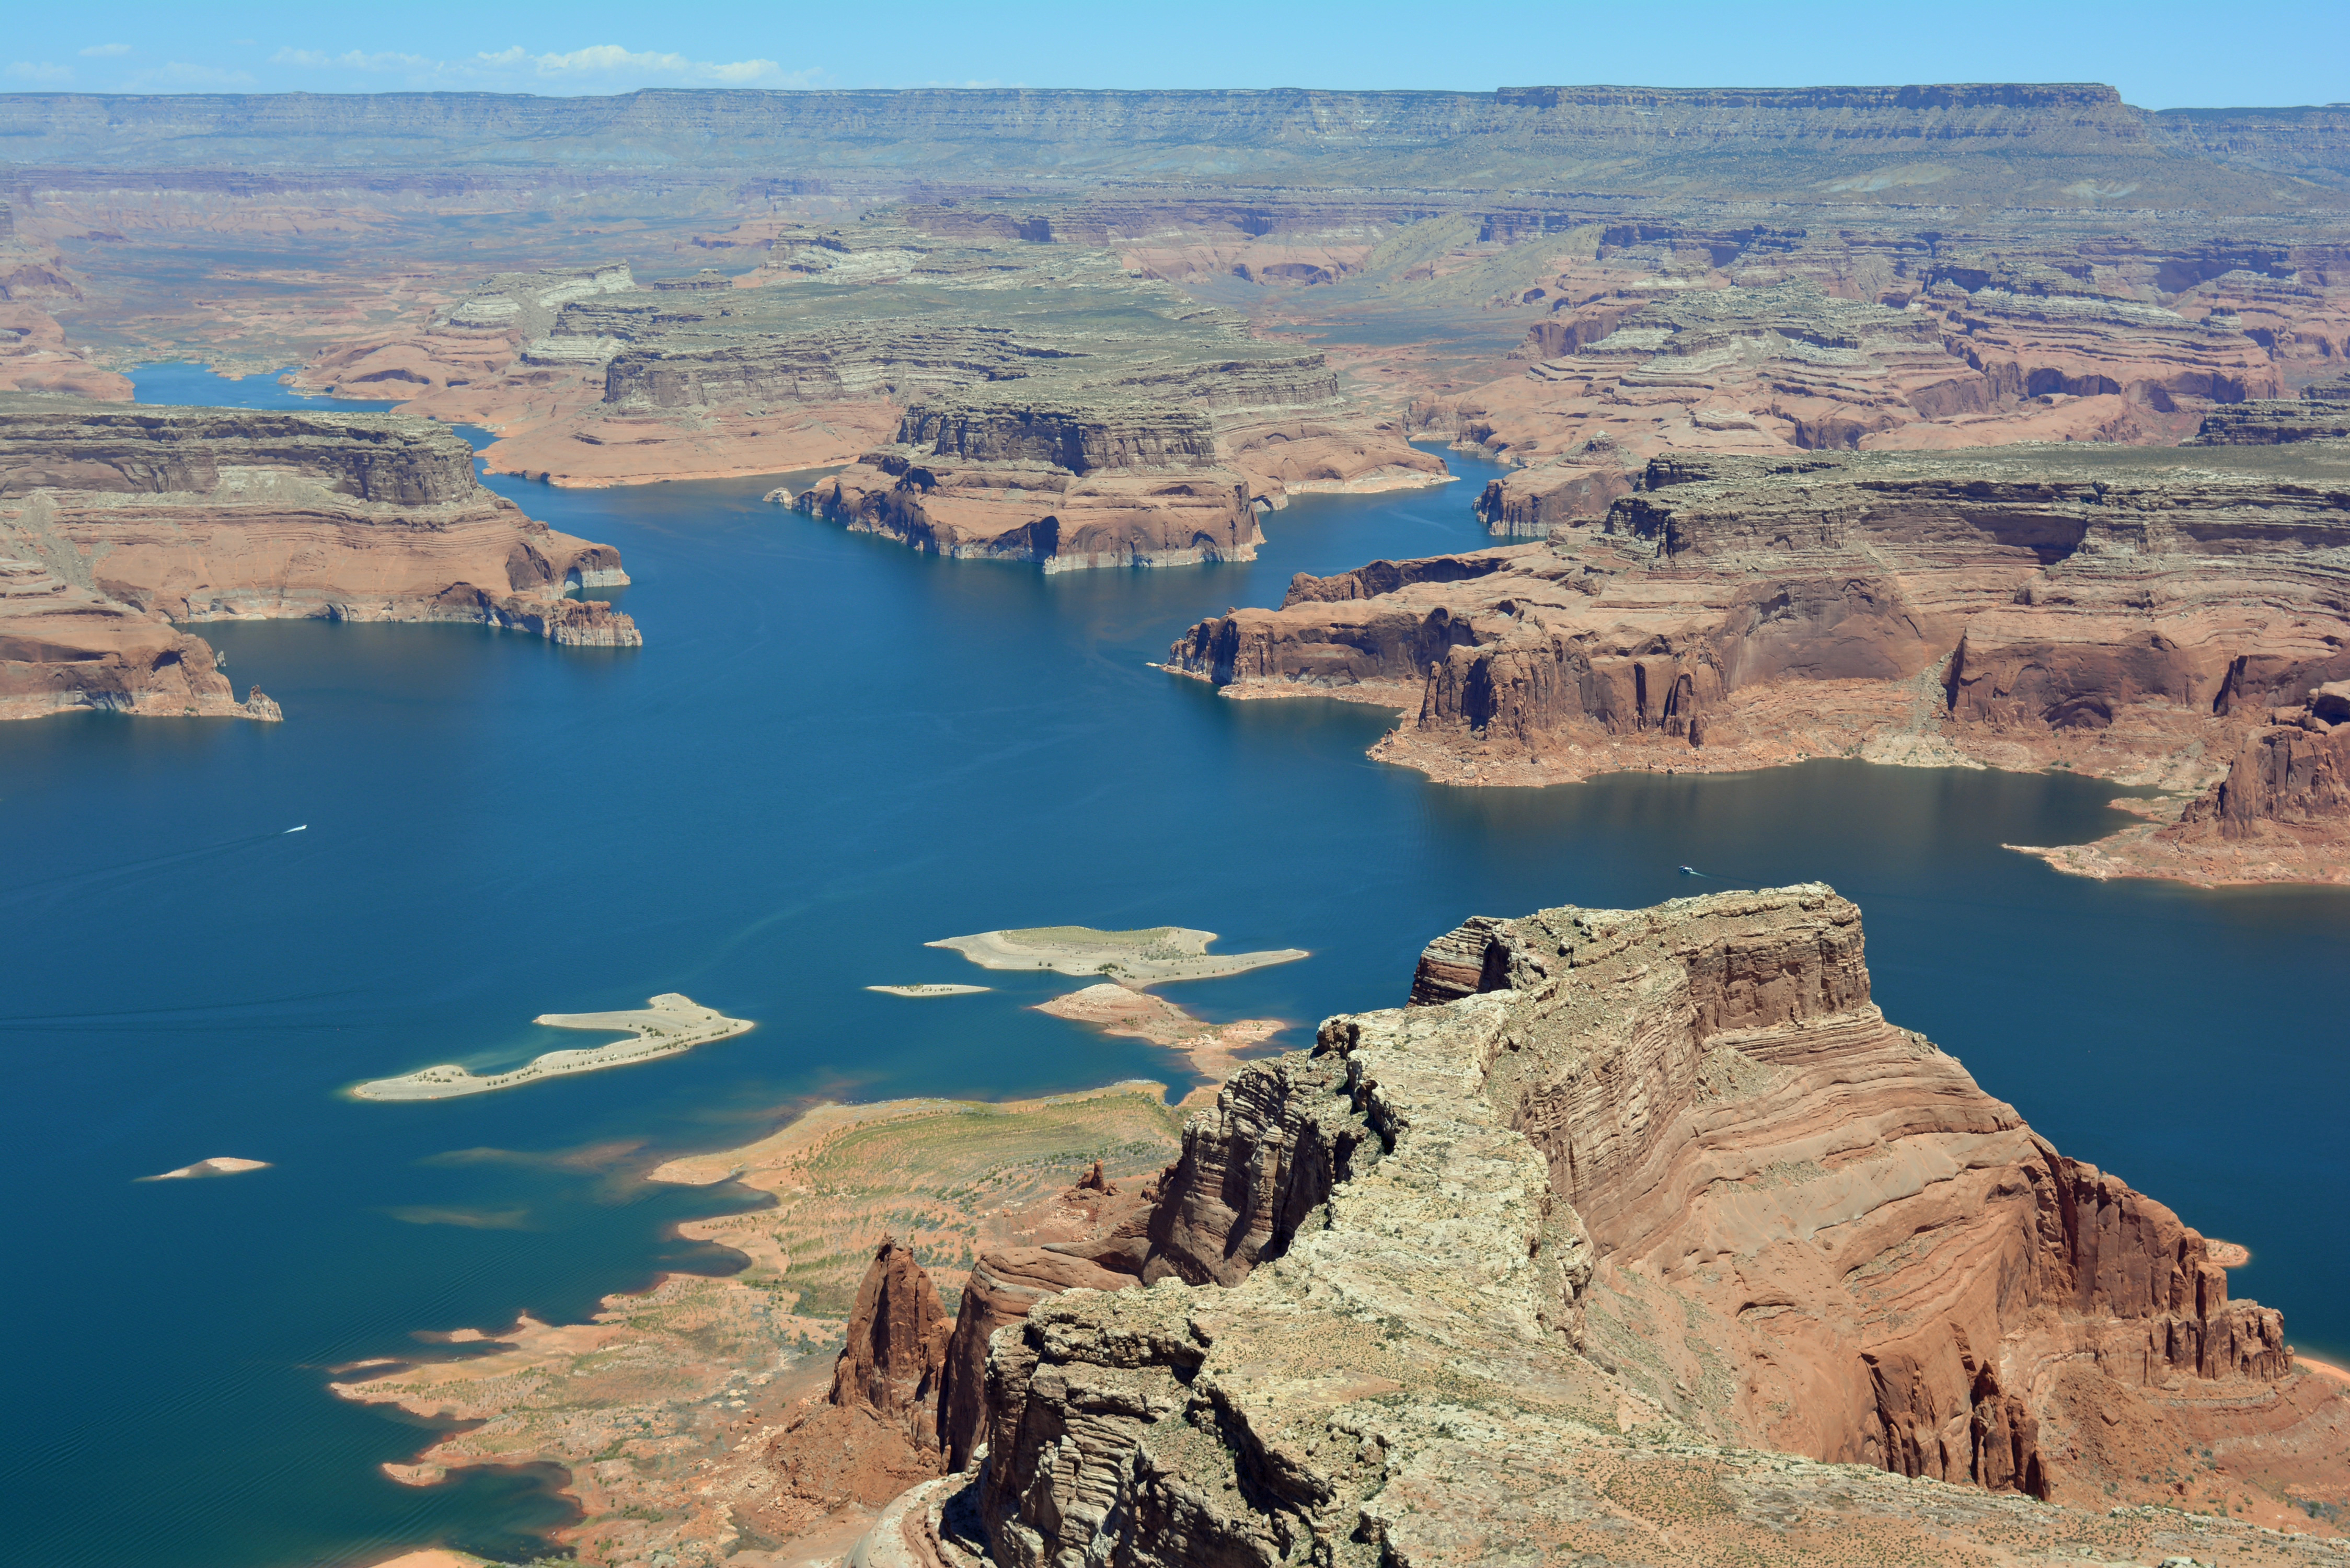 The top of Tower Butte offers a panoramic view of Lake Powell, the largest man-made lake in North America.